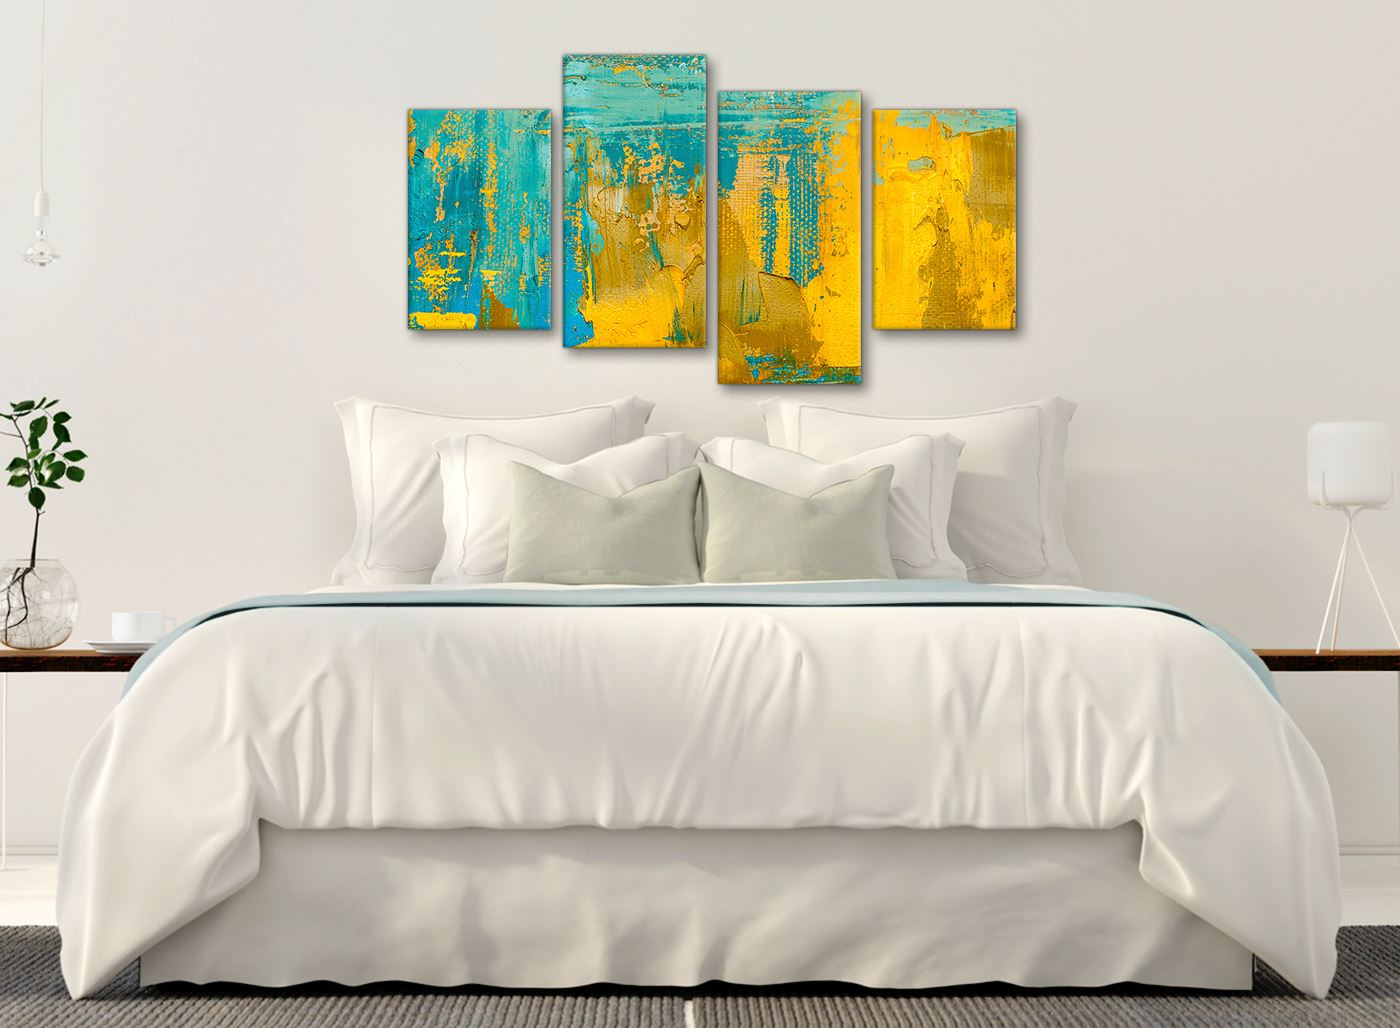 Details about Mustard Yellow and Teal Turquoise - Abstract Dining Room  Canvas Wall Art Decor